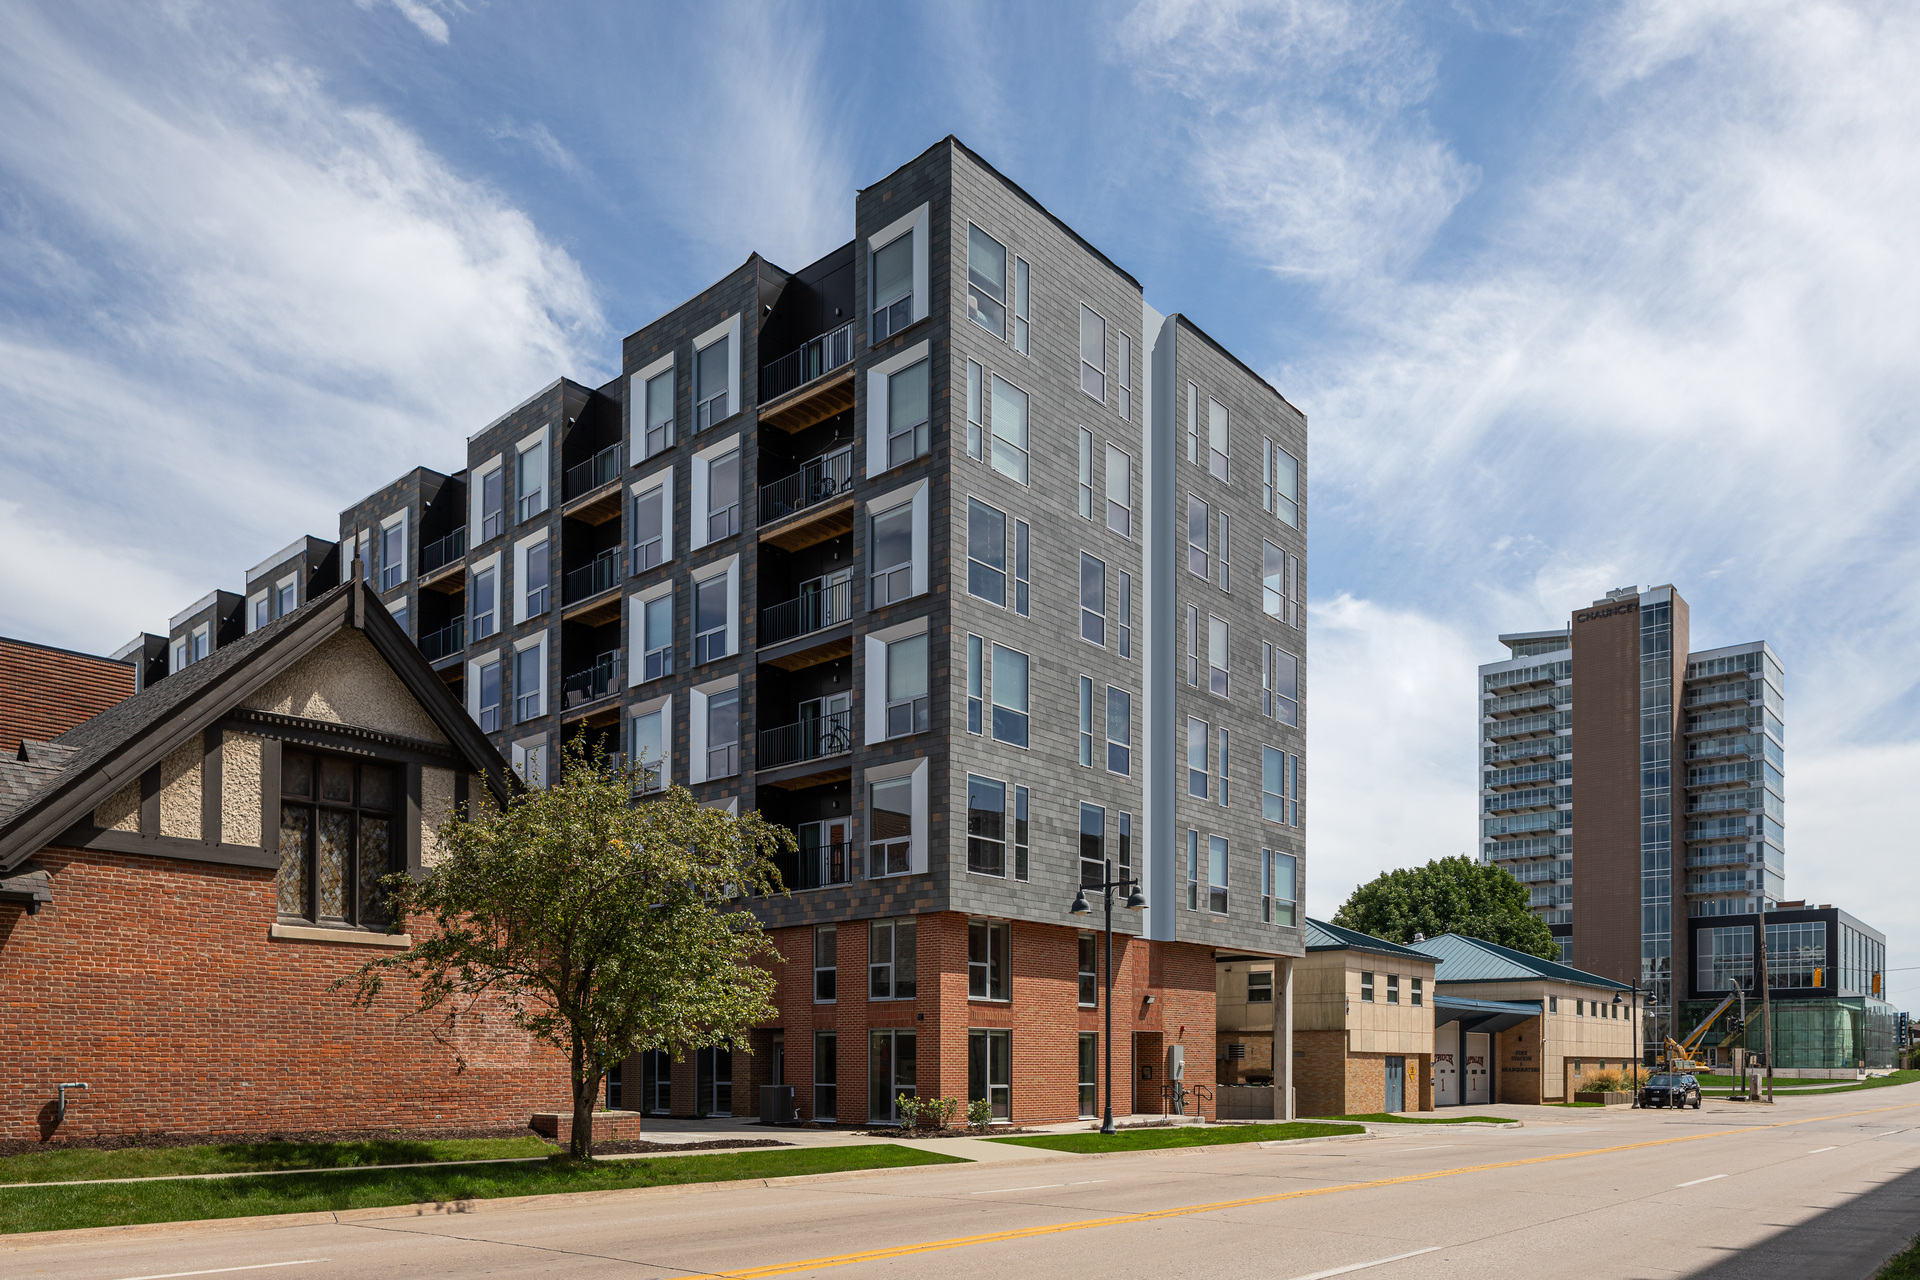 NeXclad True Facades in Antique Pewter offers a sleek streamlined look to this apartment complex.